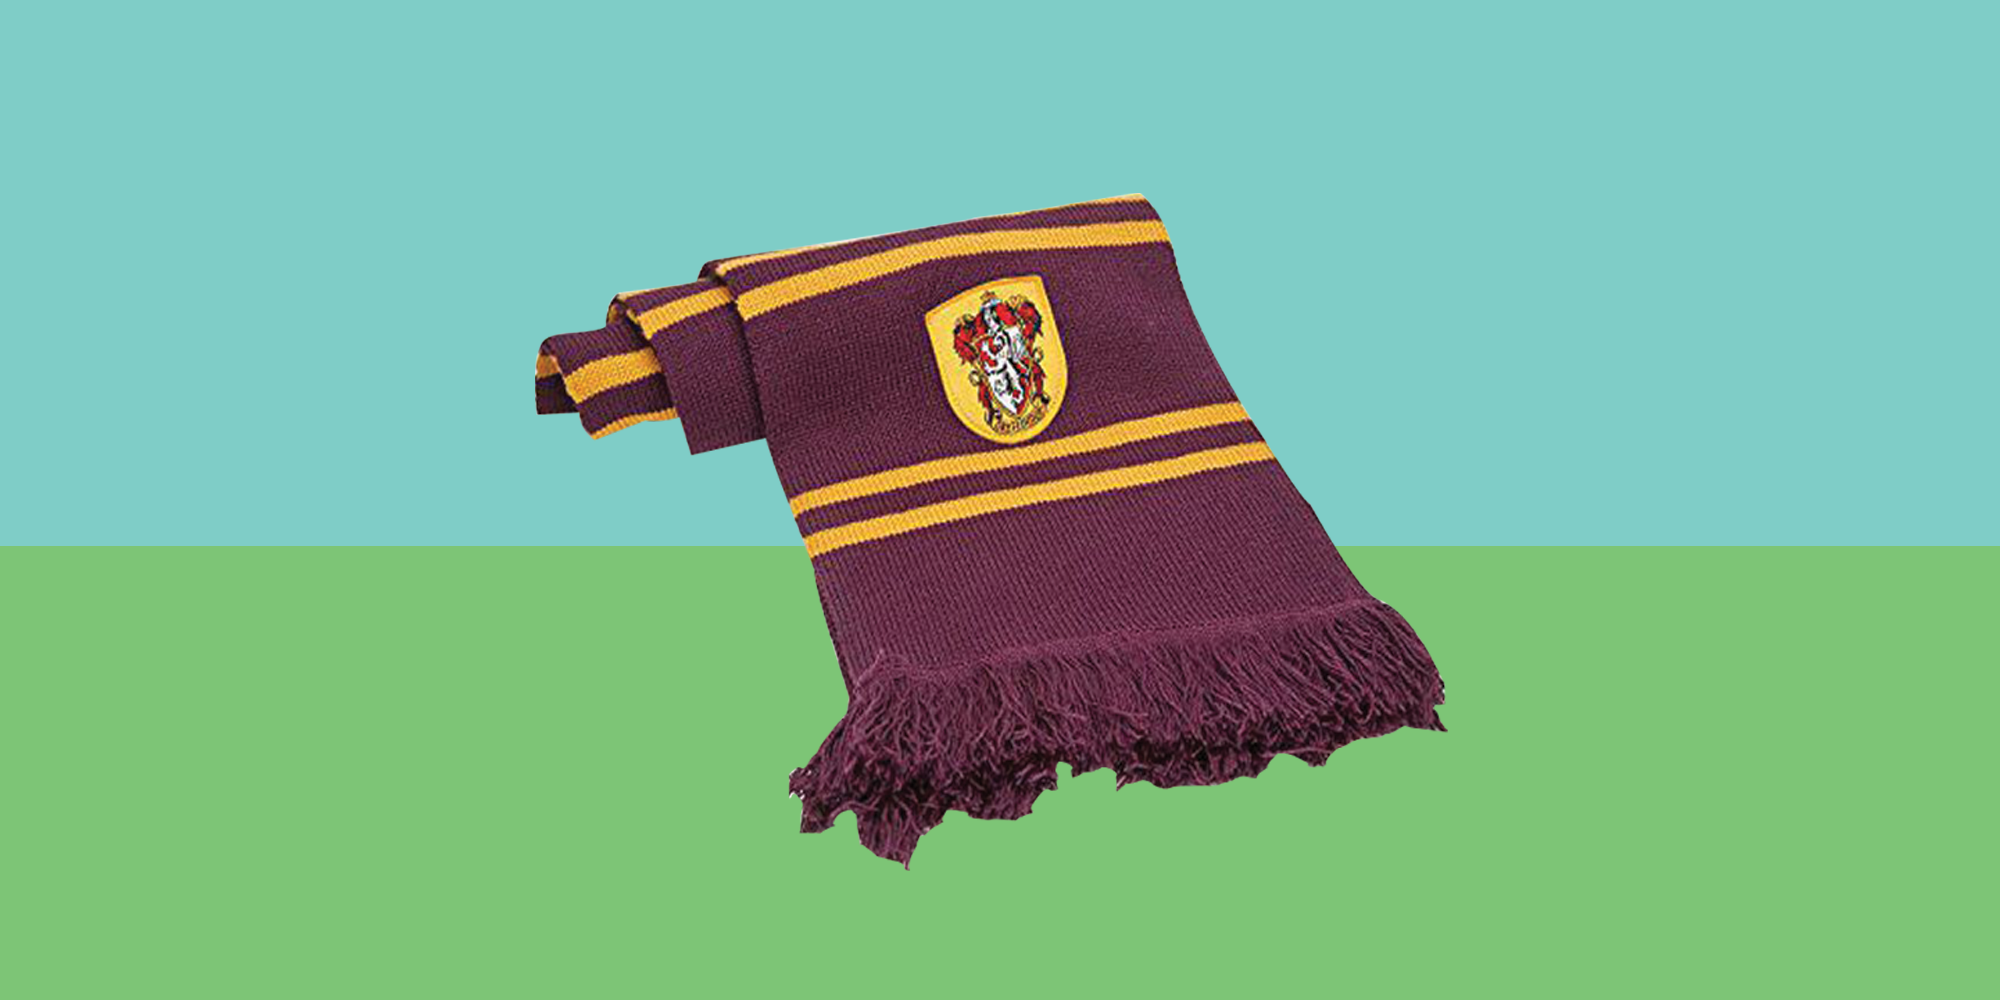 26 Gifts for the Harry Potter Fan We All Know and Love